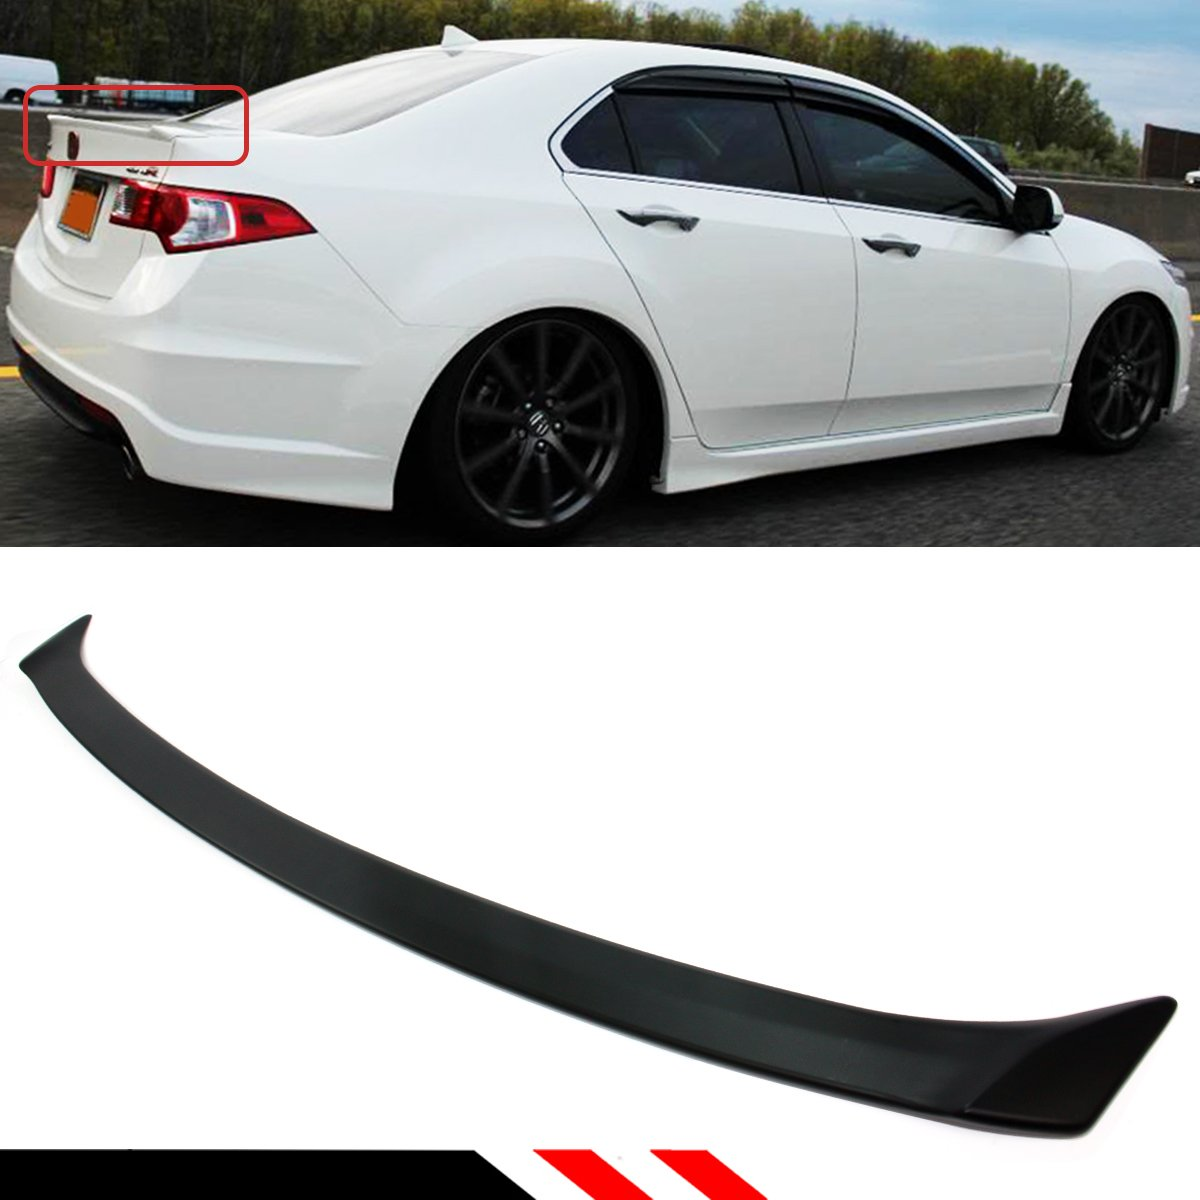 Cuztom Tuning Fits for 2009-2014 Acura TSX Euro R(Accord) Sport Style Flush  Fit Rear Trunk Deck Lid Spoiler Wing